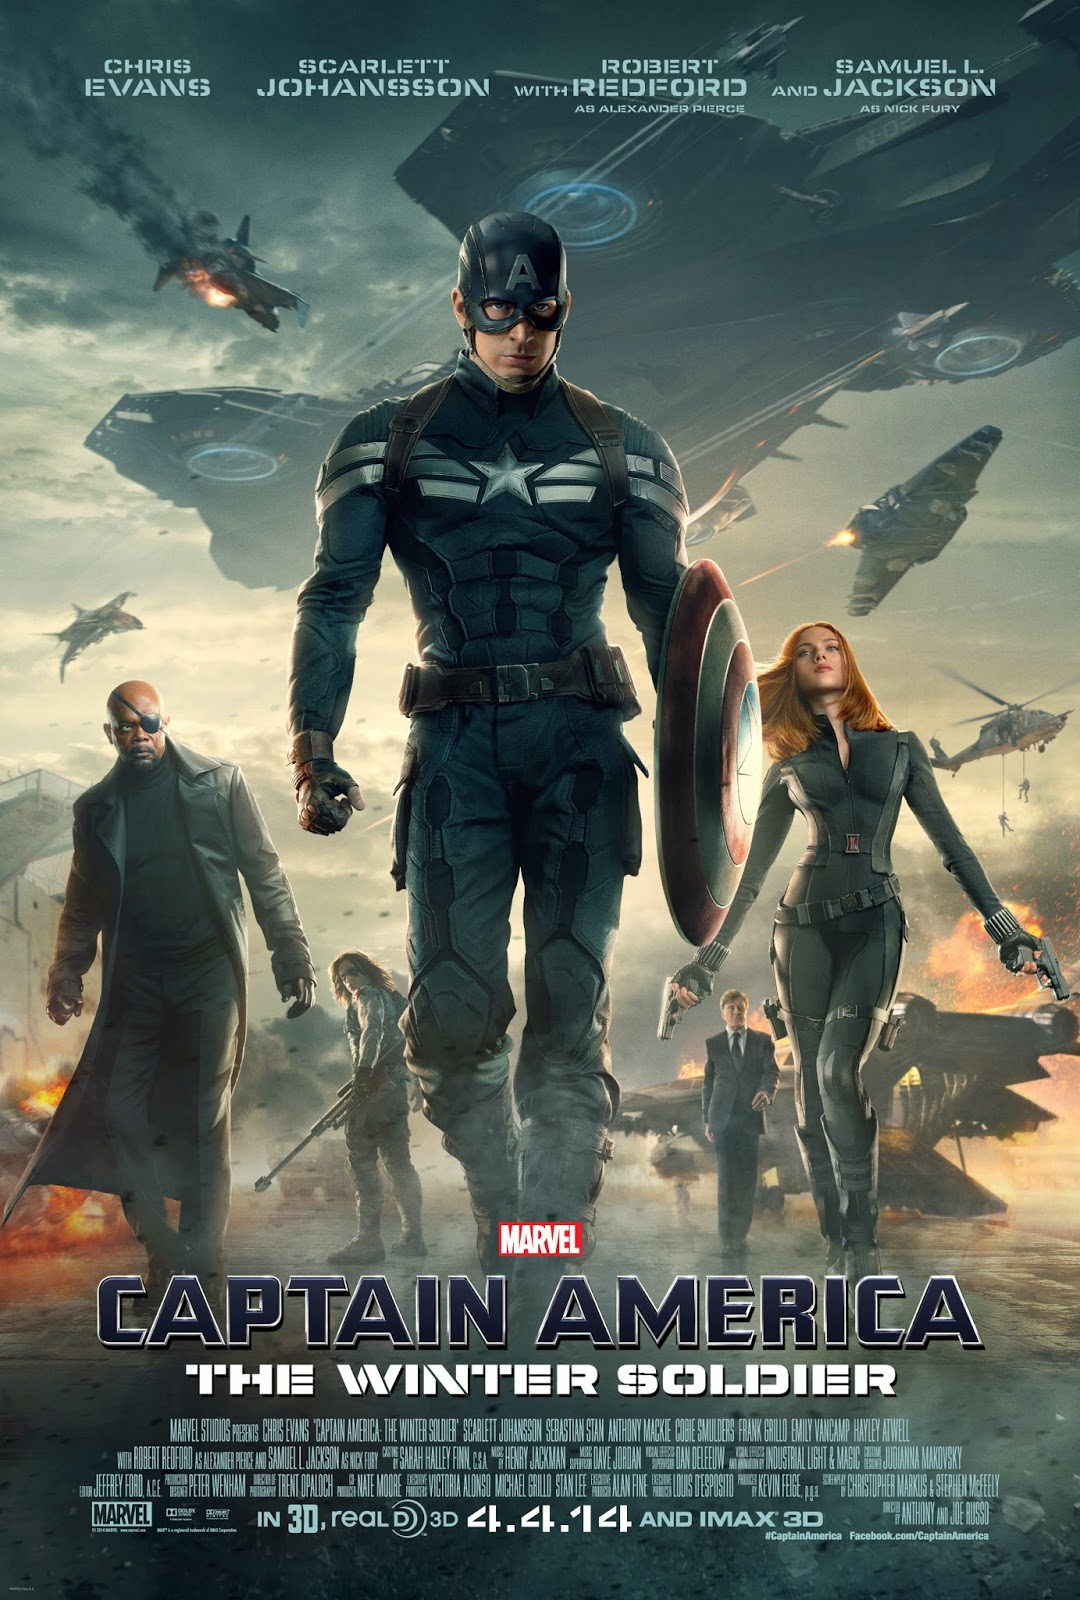 New CAPTAIN AMERICA: THE WINTER SOLDIER Poster